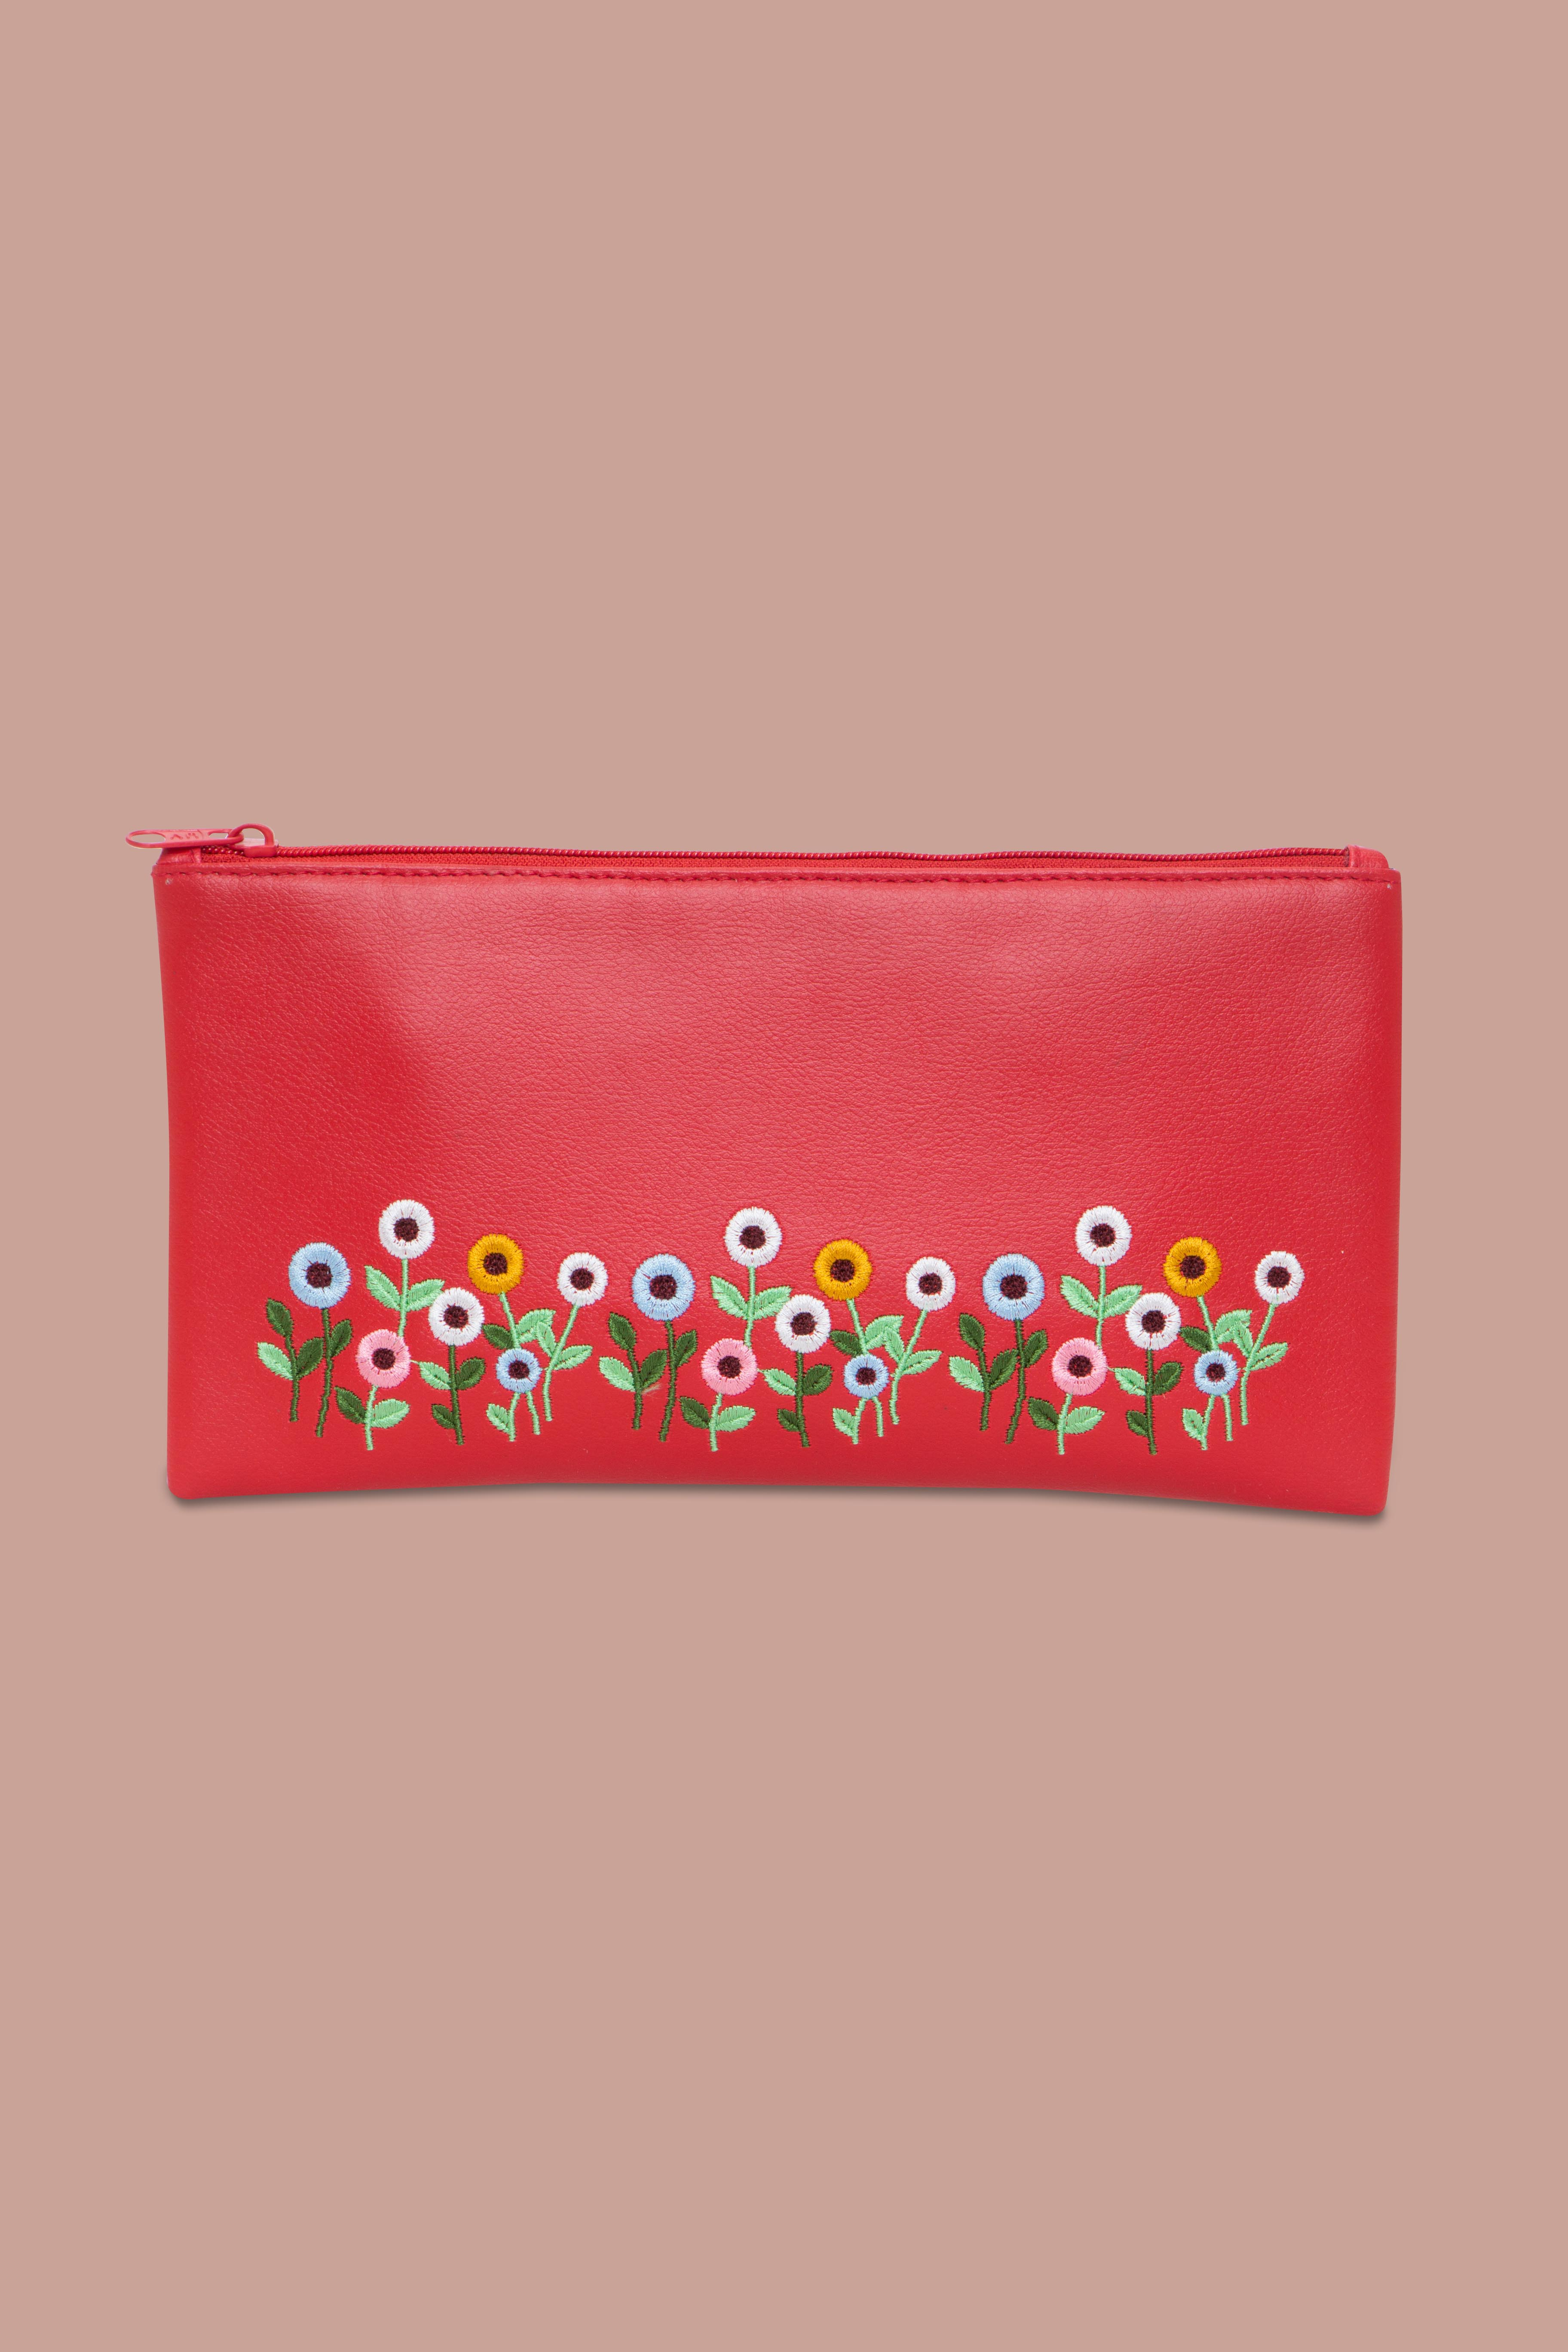 Folle Embroidery Red Clutch